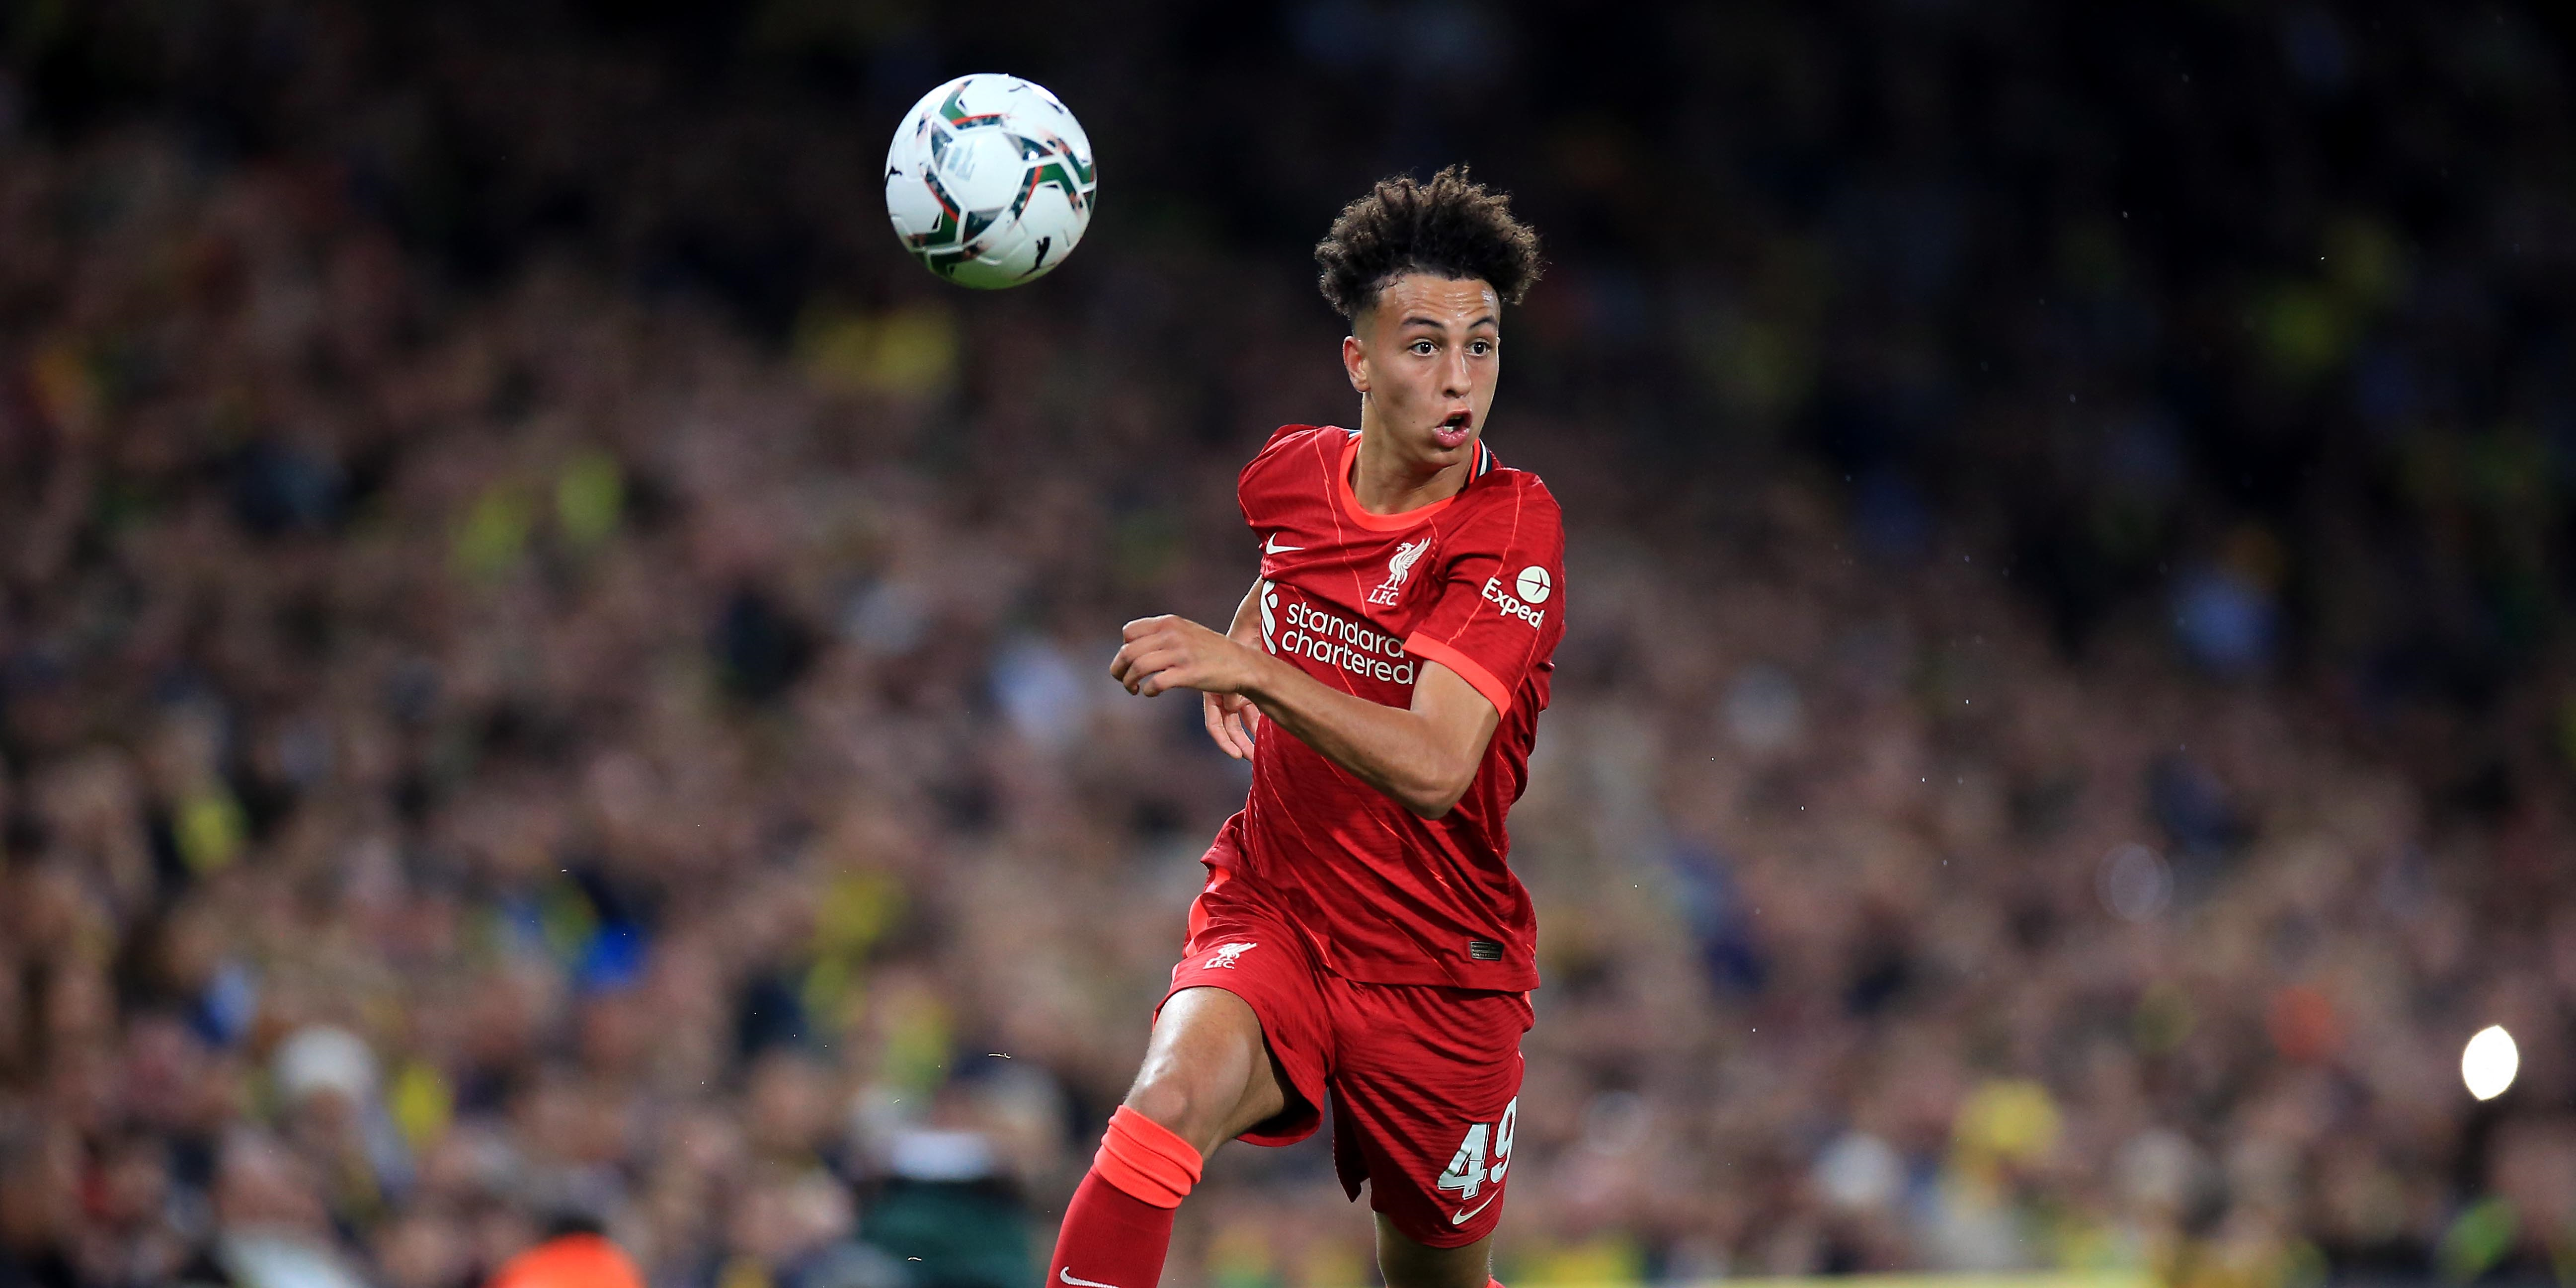 Liverpool starlet once dubbed the 'best 16-year-old in the country' signs first professional contract with Reds